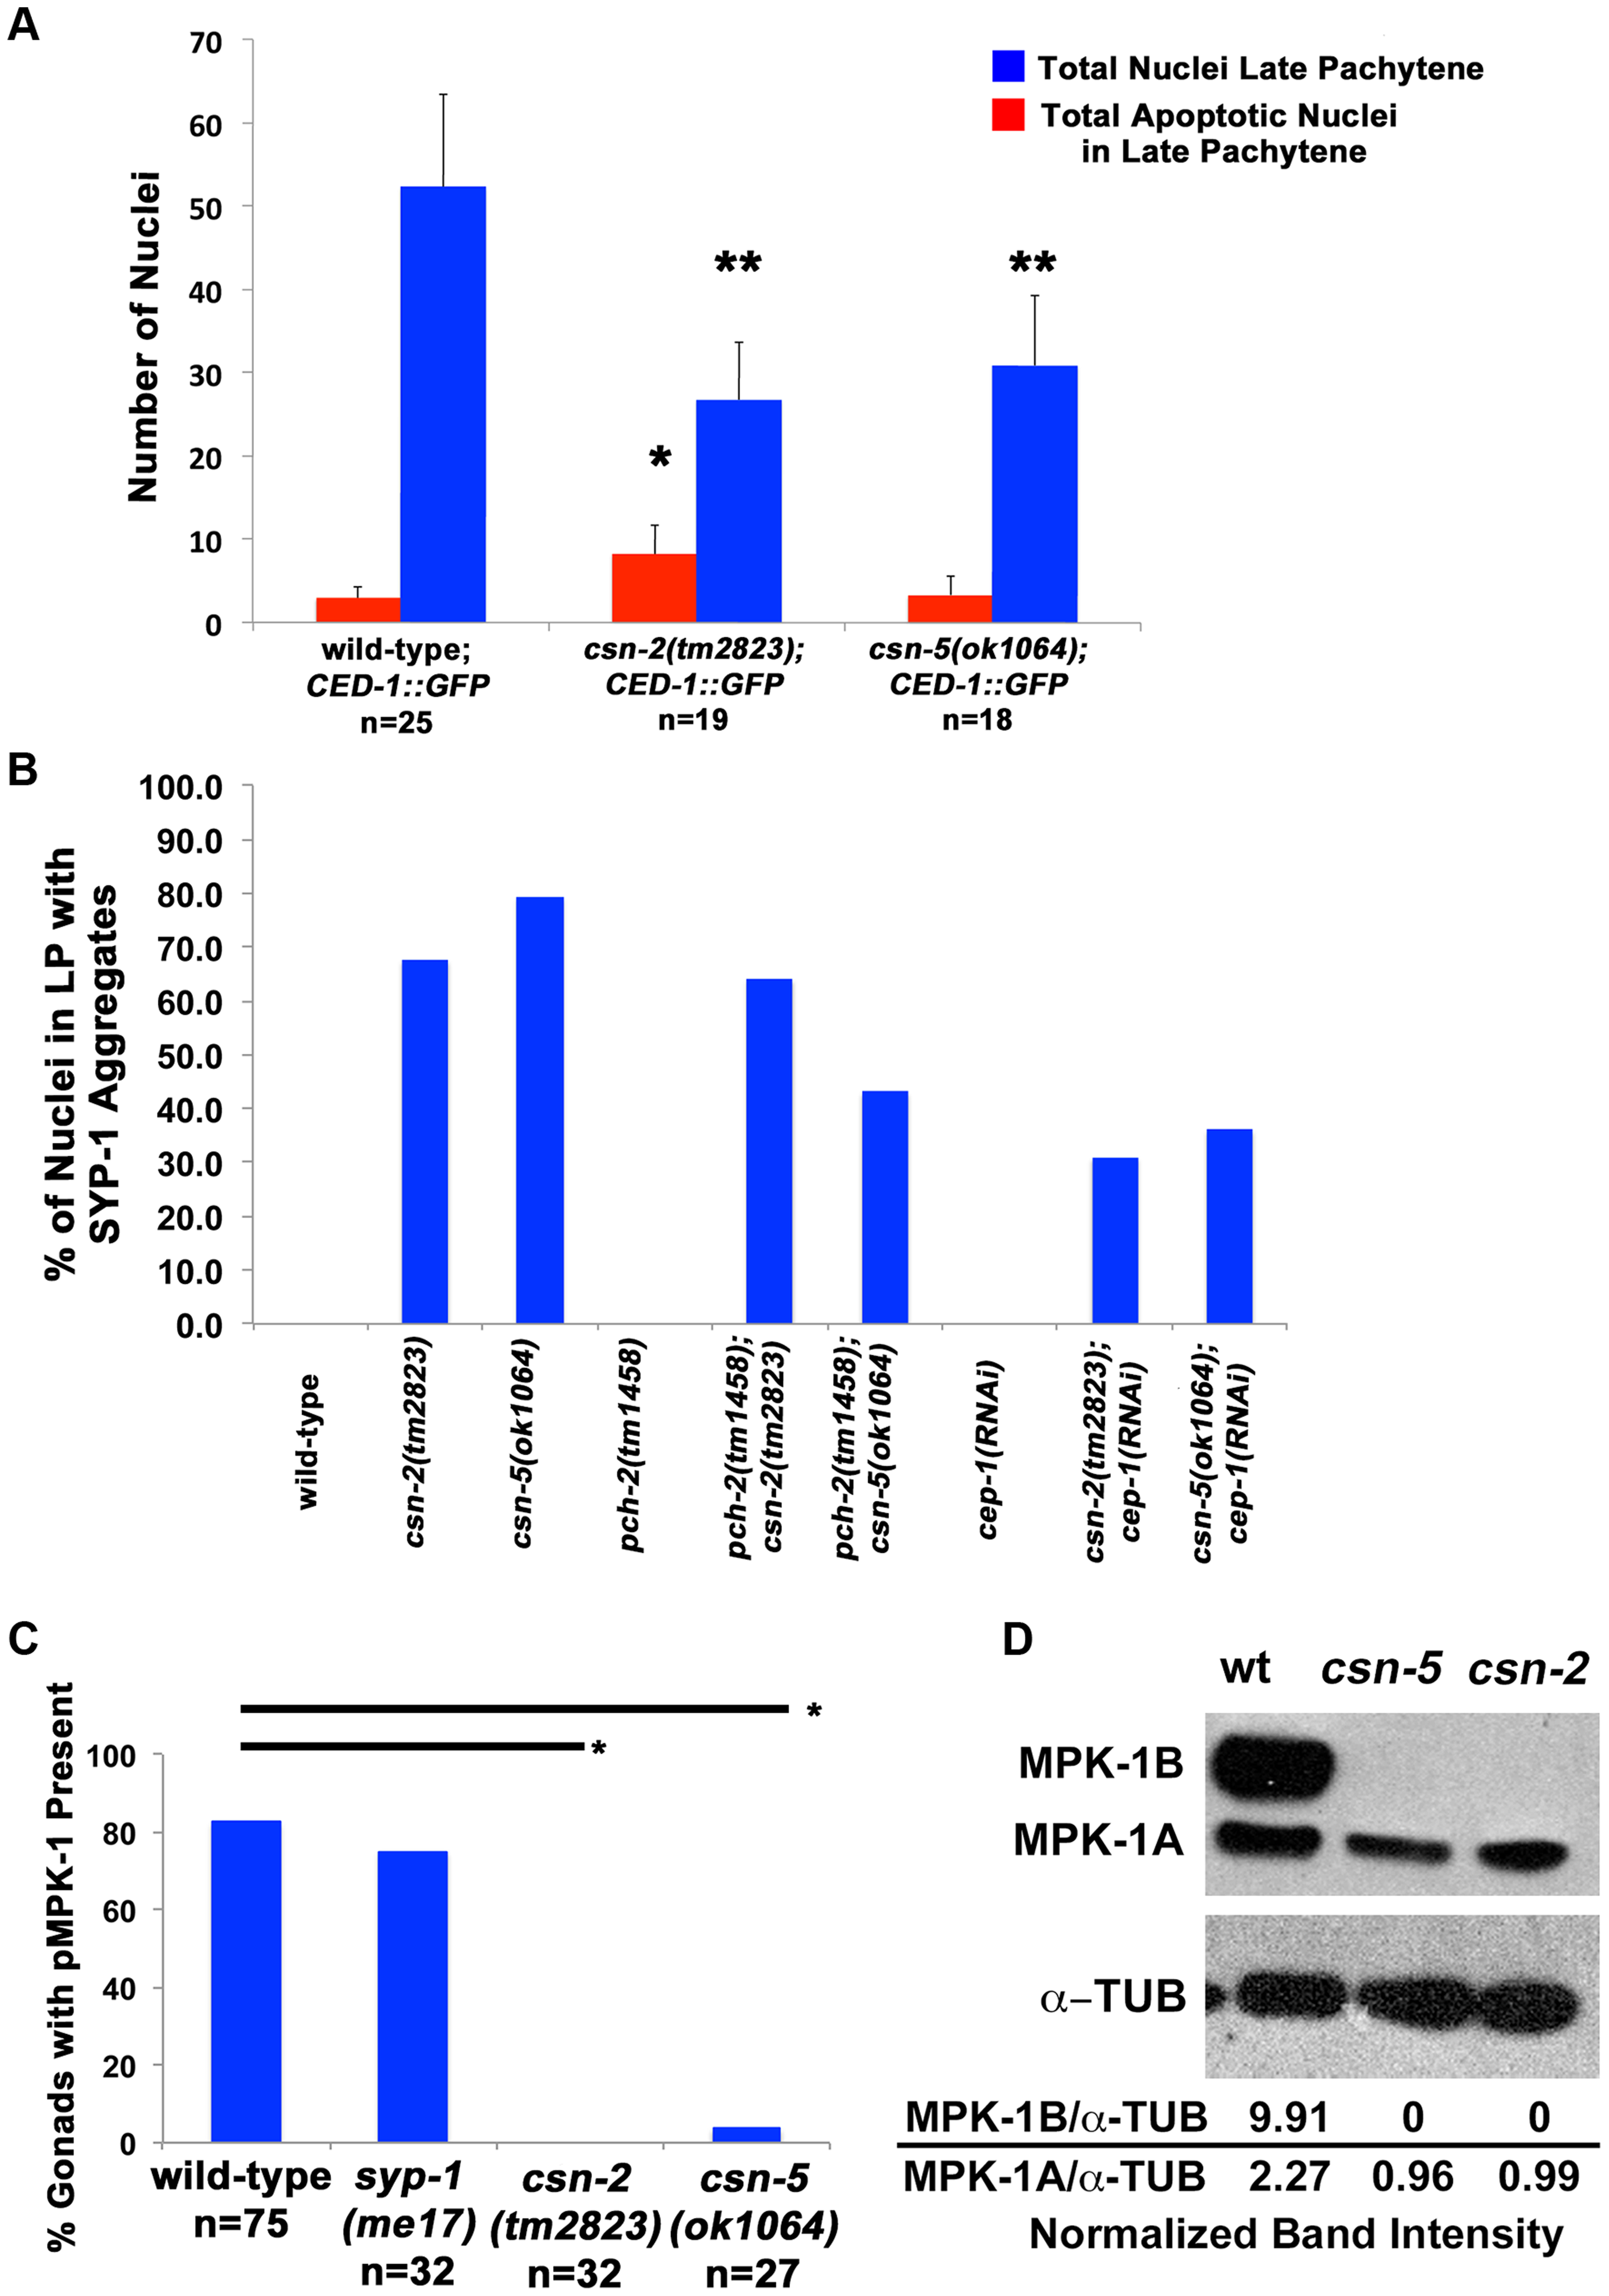 Apoptosis and MPK-1 expression are altered in <i>csn</i> mutants.